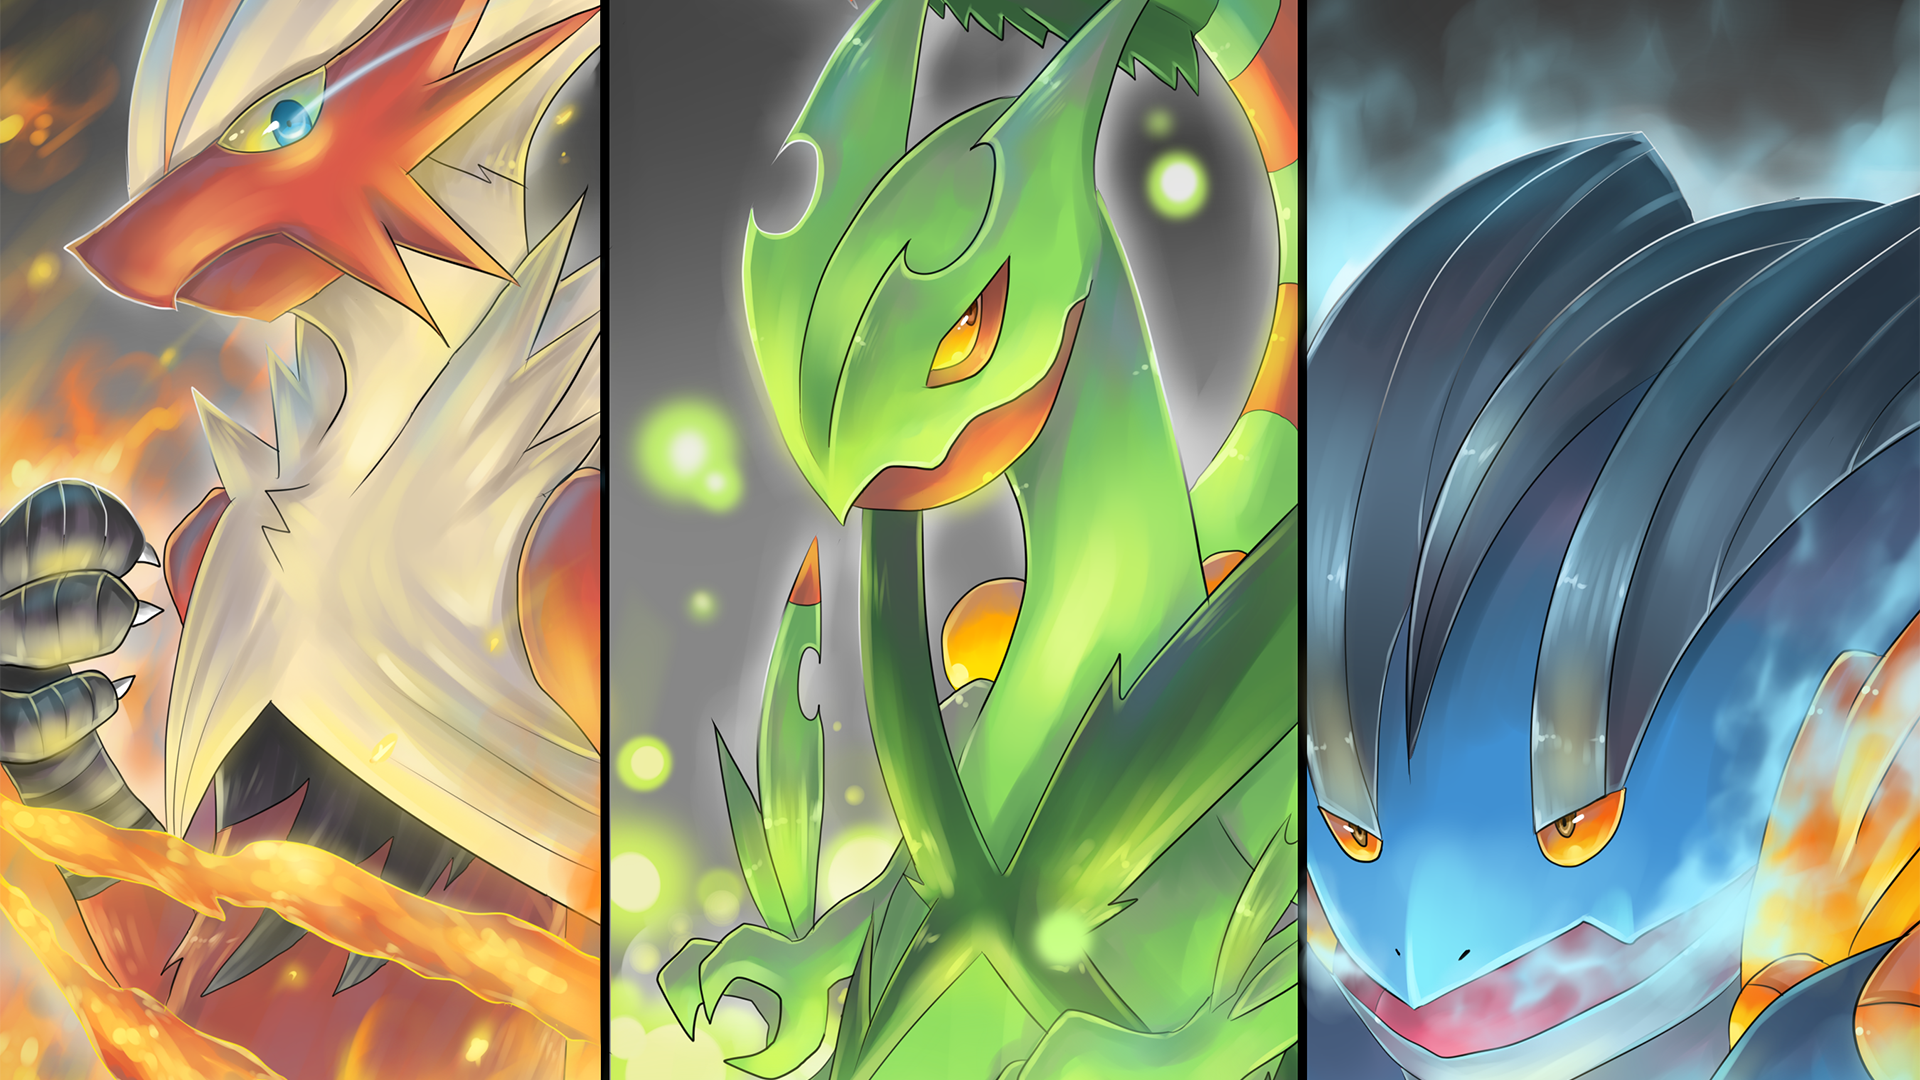 3 Mega Blaziken Pokemon HD Wallpapers